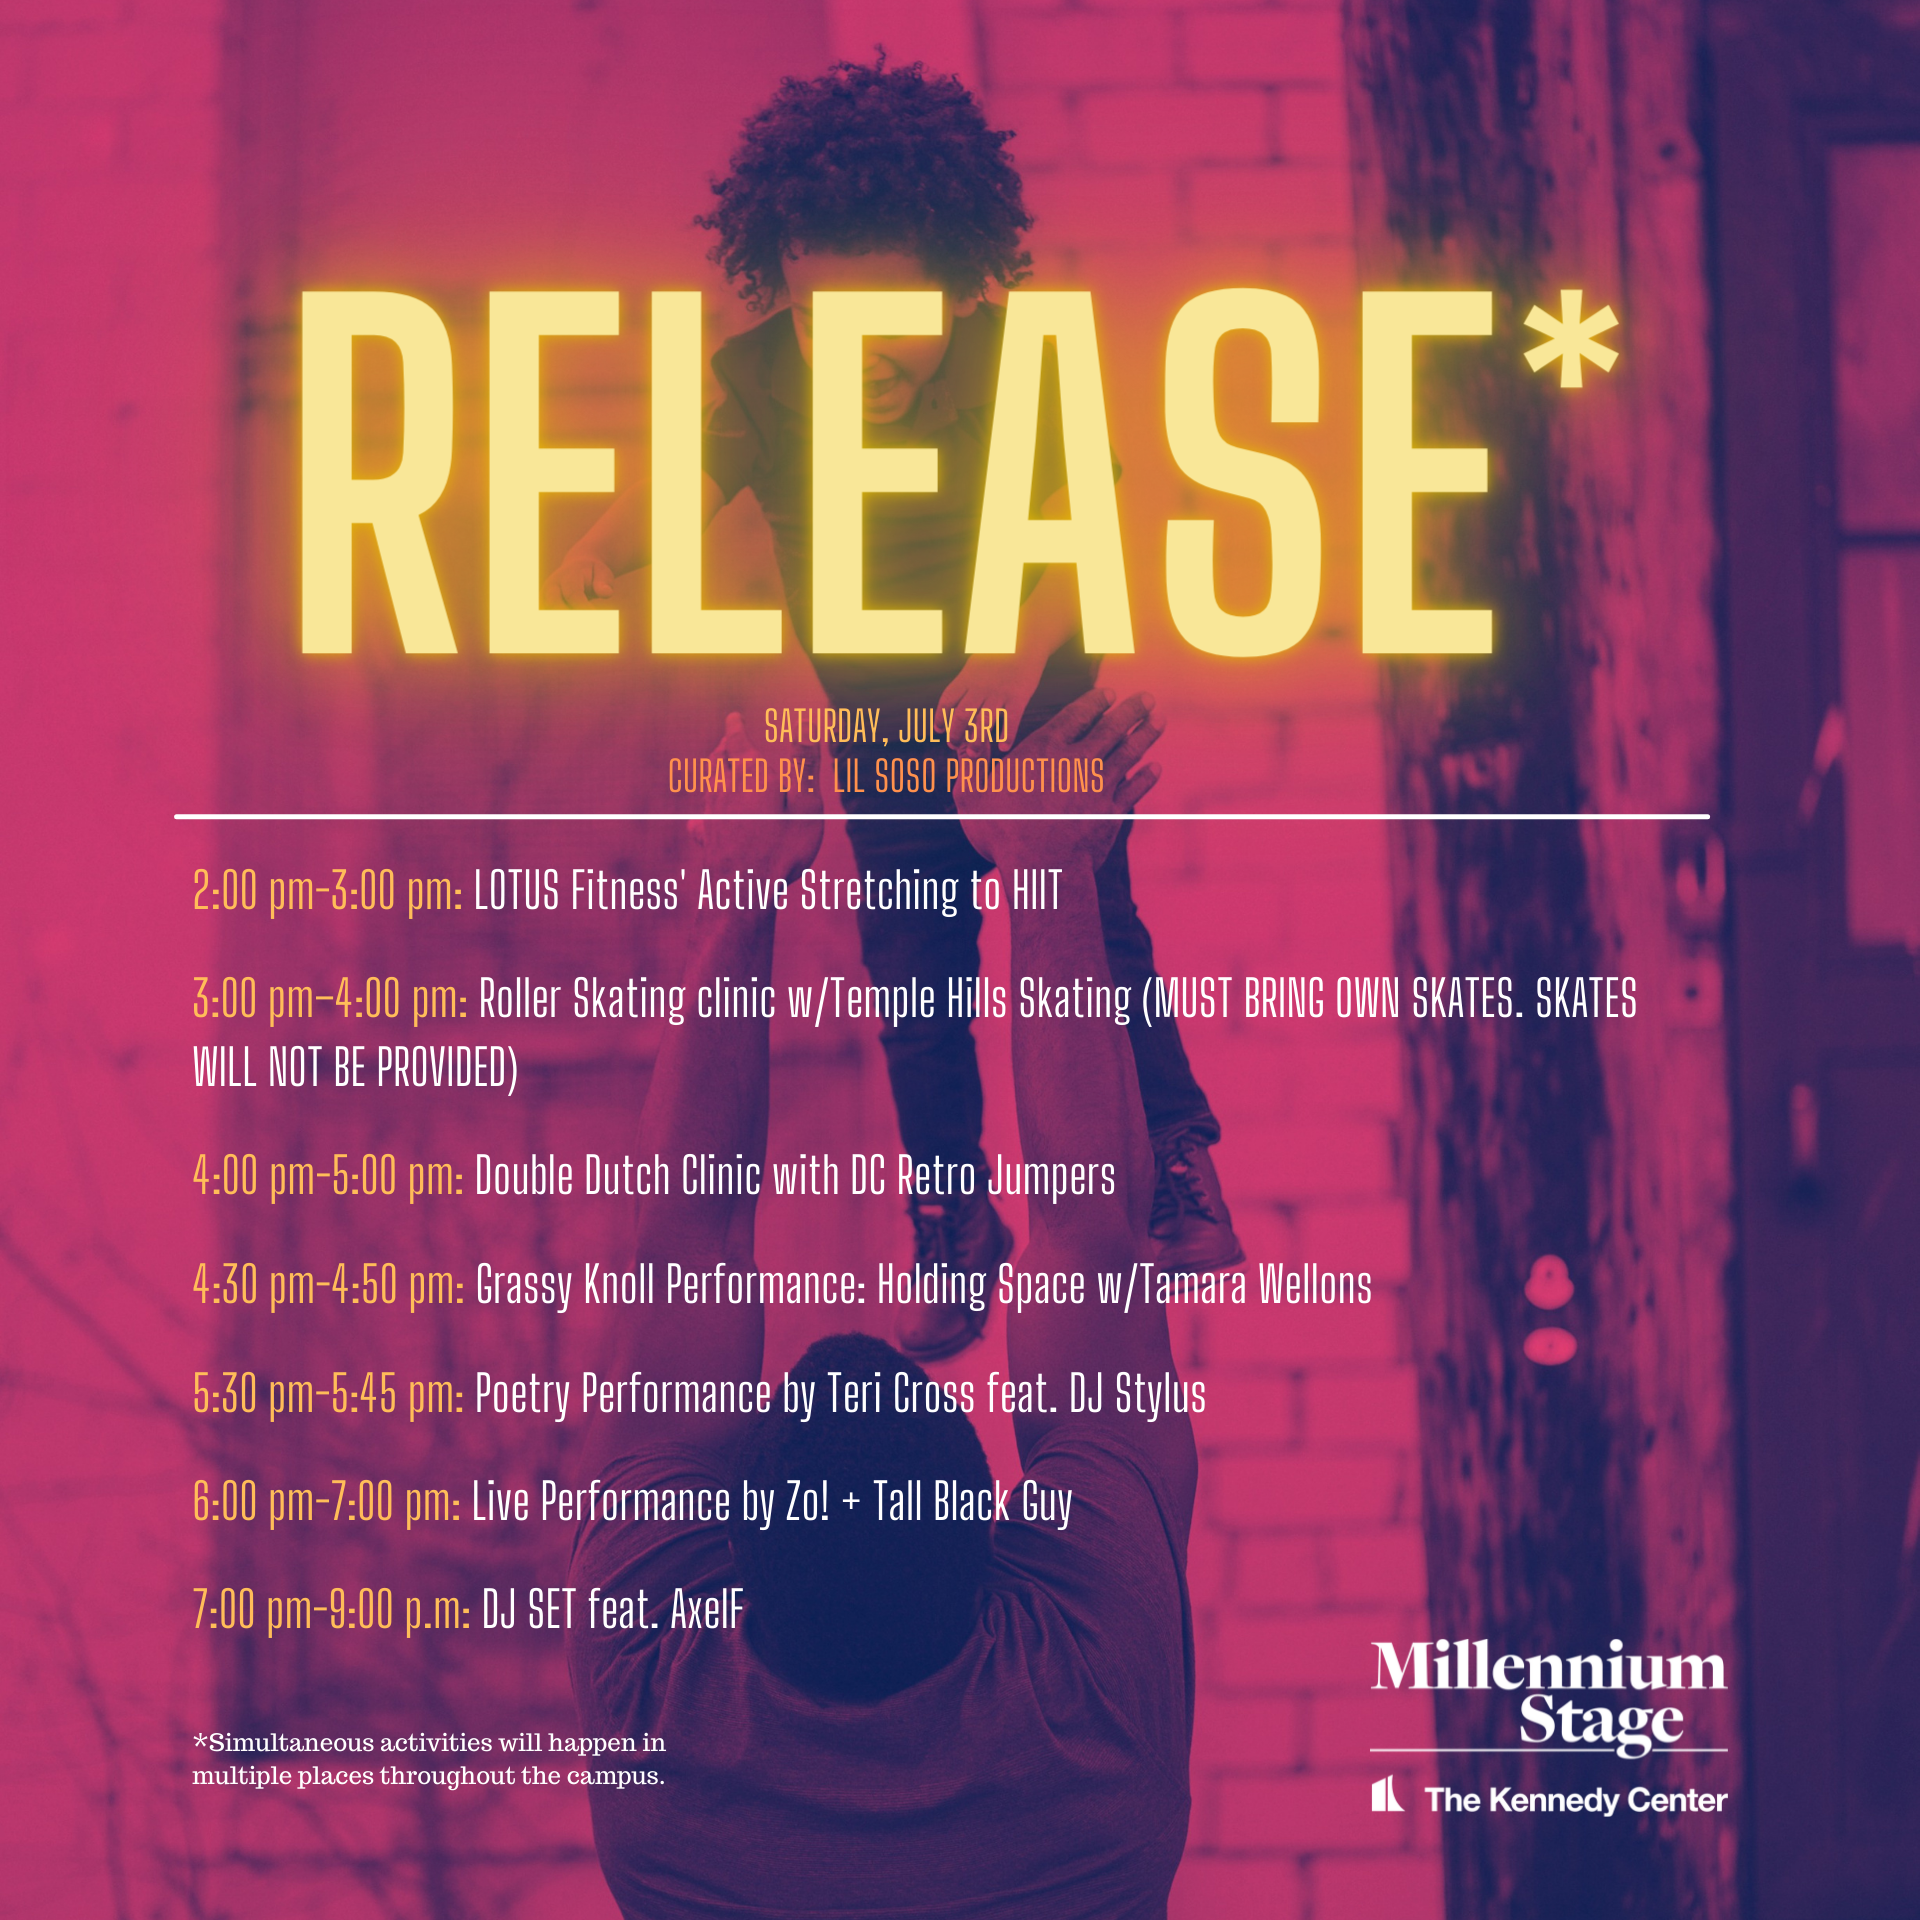 Relax, Relate Release - Kennedy Center's Reach Plaza - July 1-3 2021